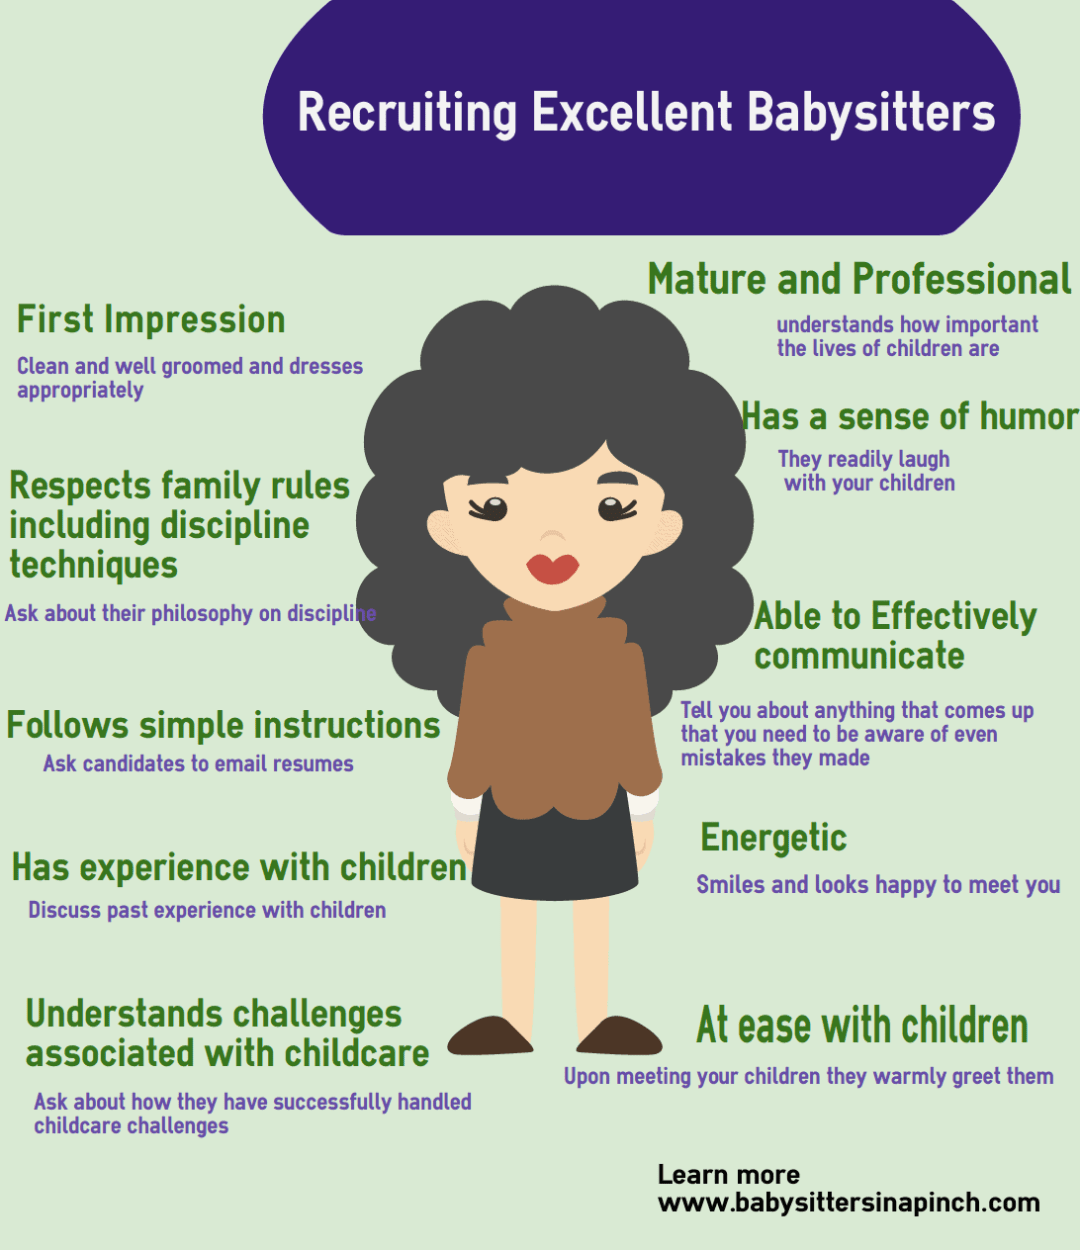 babysitter recruiting.png